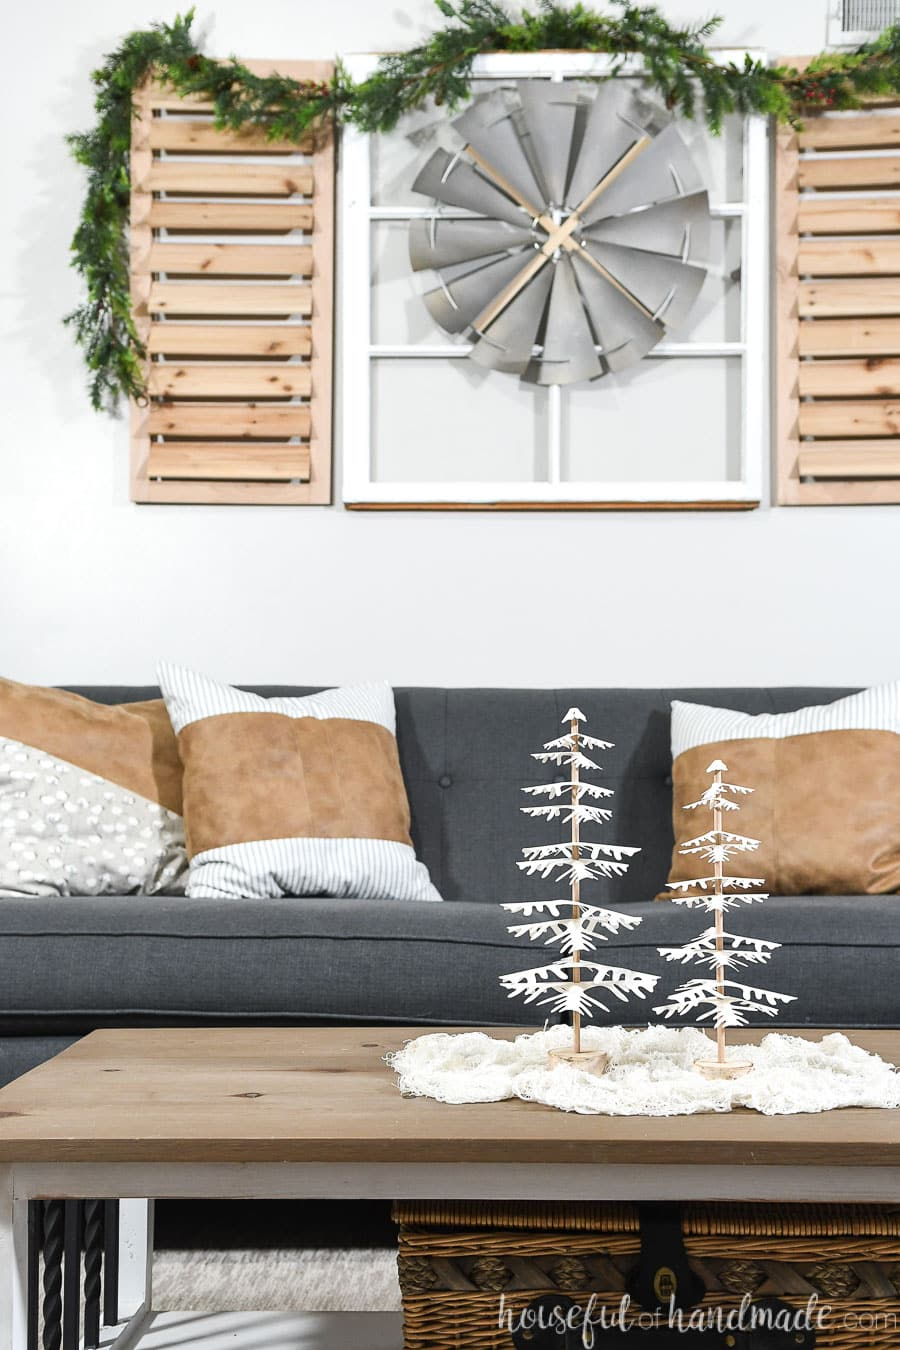 Living room decorated with white tabletop paper Christmas trees on the coffee table in front of the sofa.